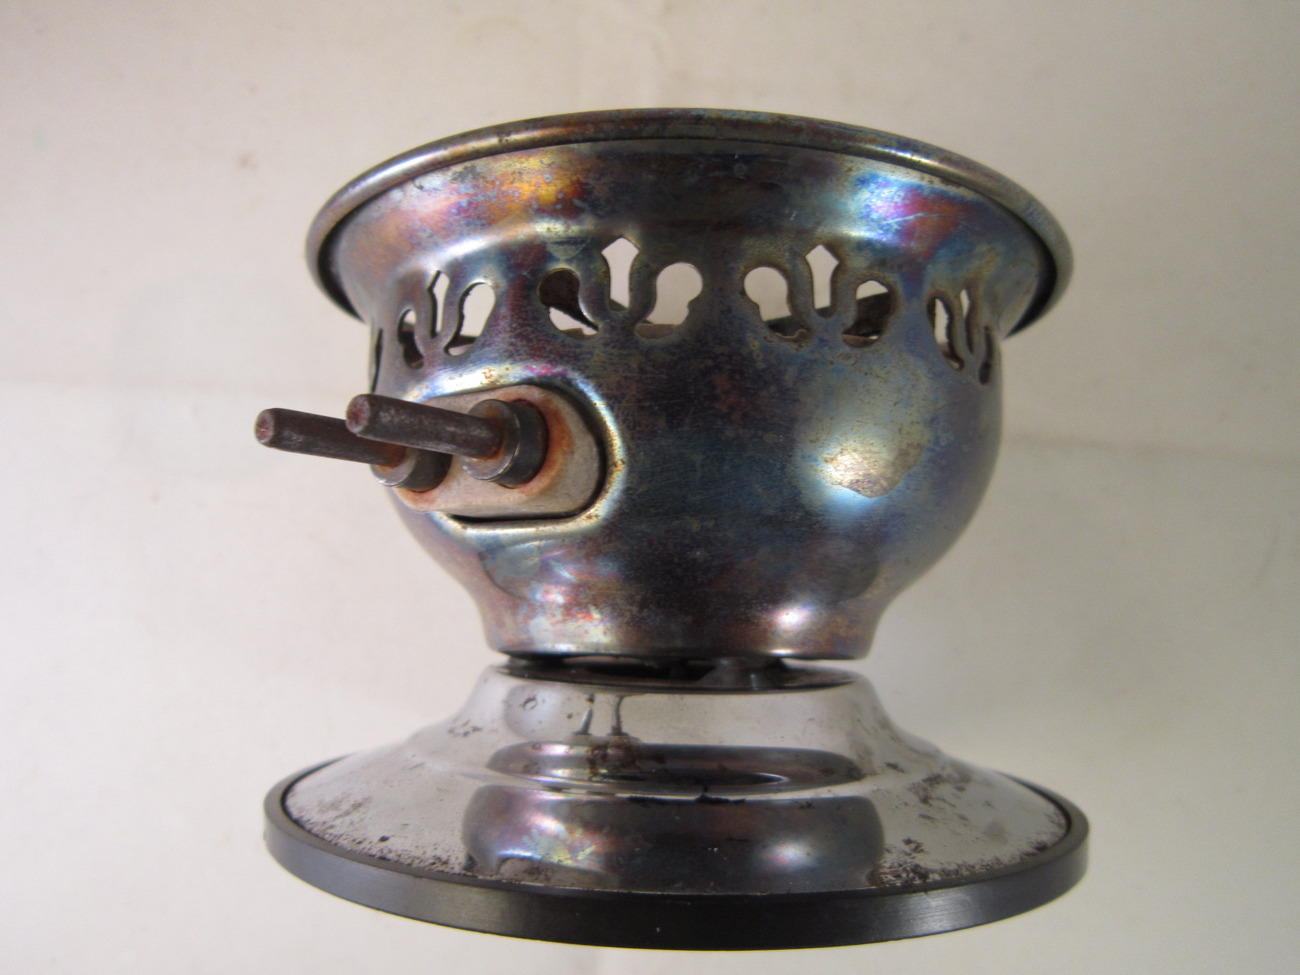 Silex Glass Coffee Maker Stove, 1930s One Cup, Vacuum Brewer Hot Plate - Coffee Makers